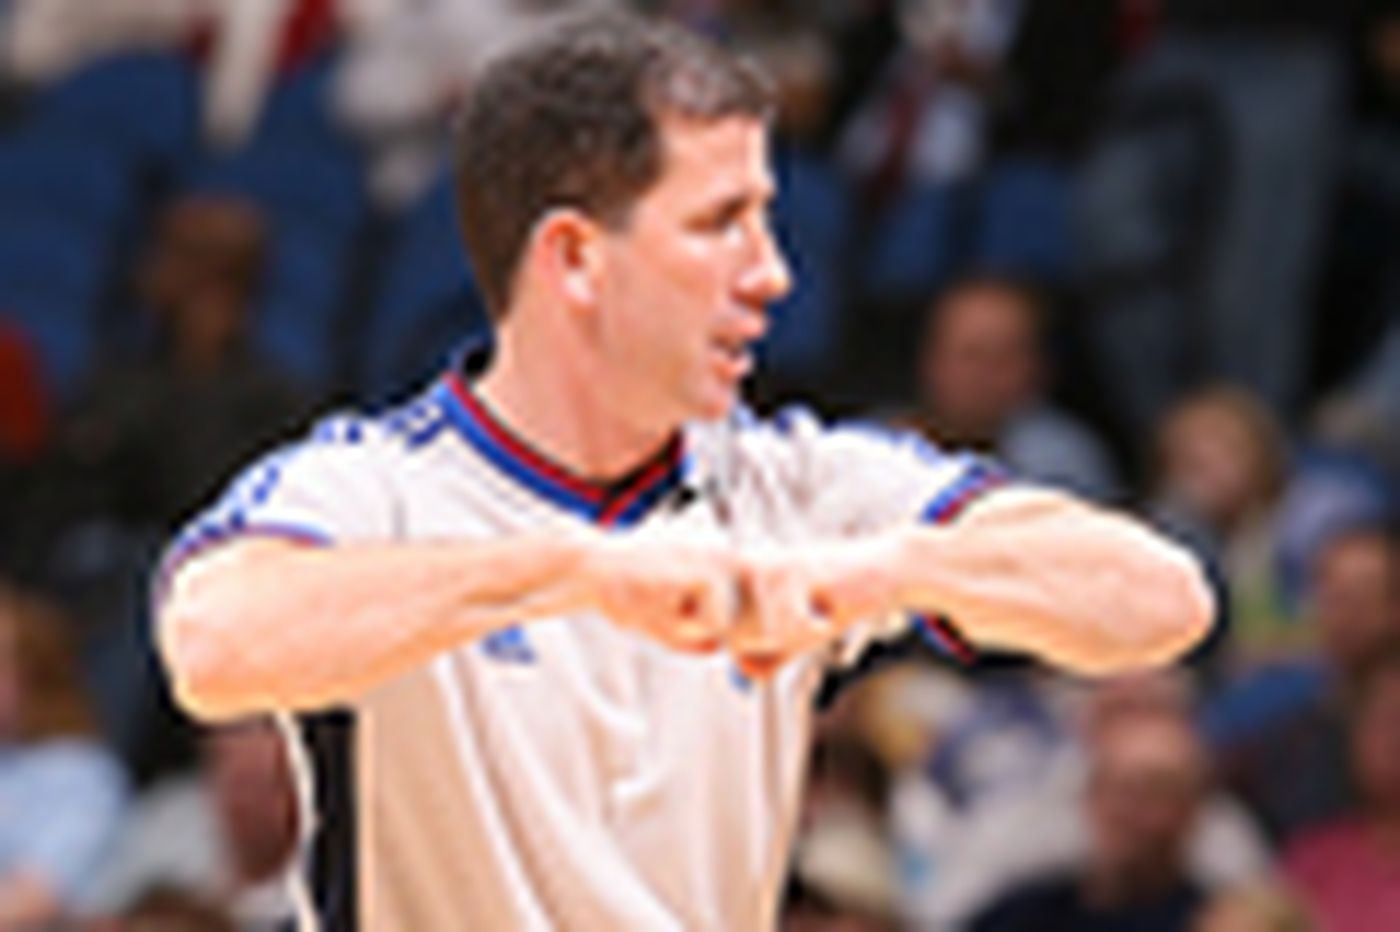 Donaghy claims NBA referees altered playoff games